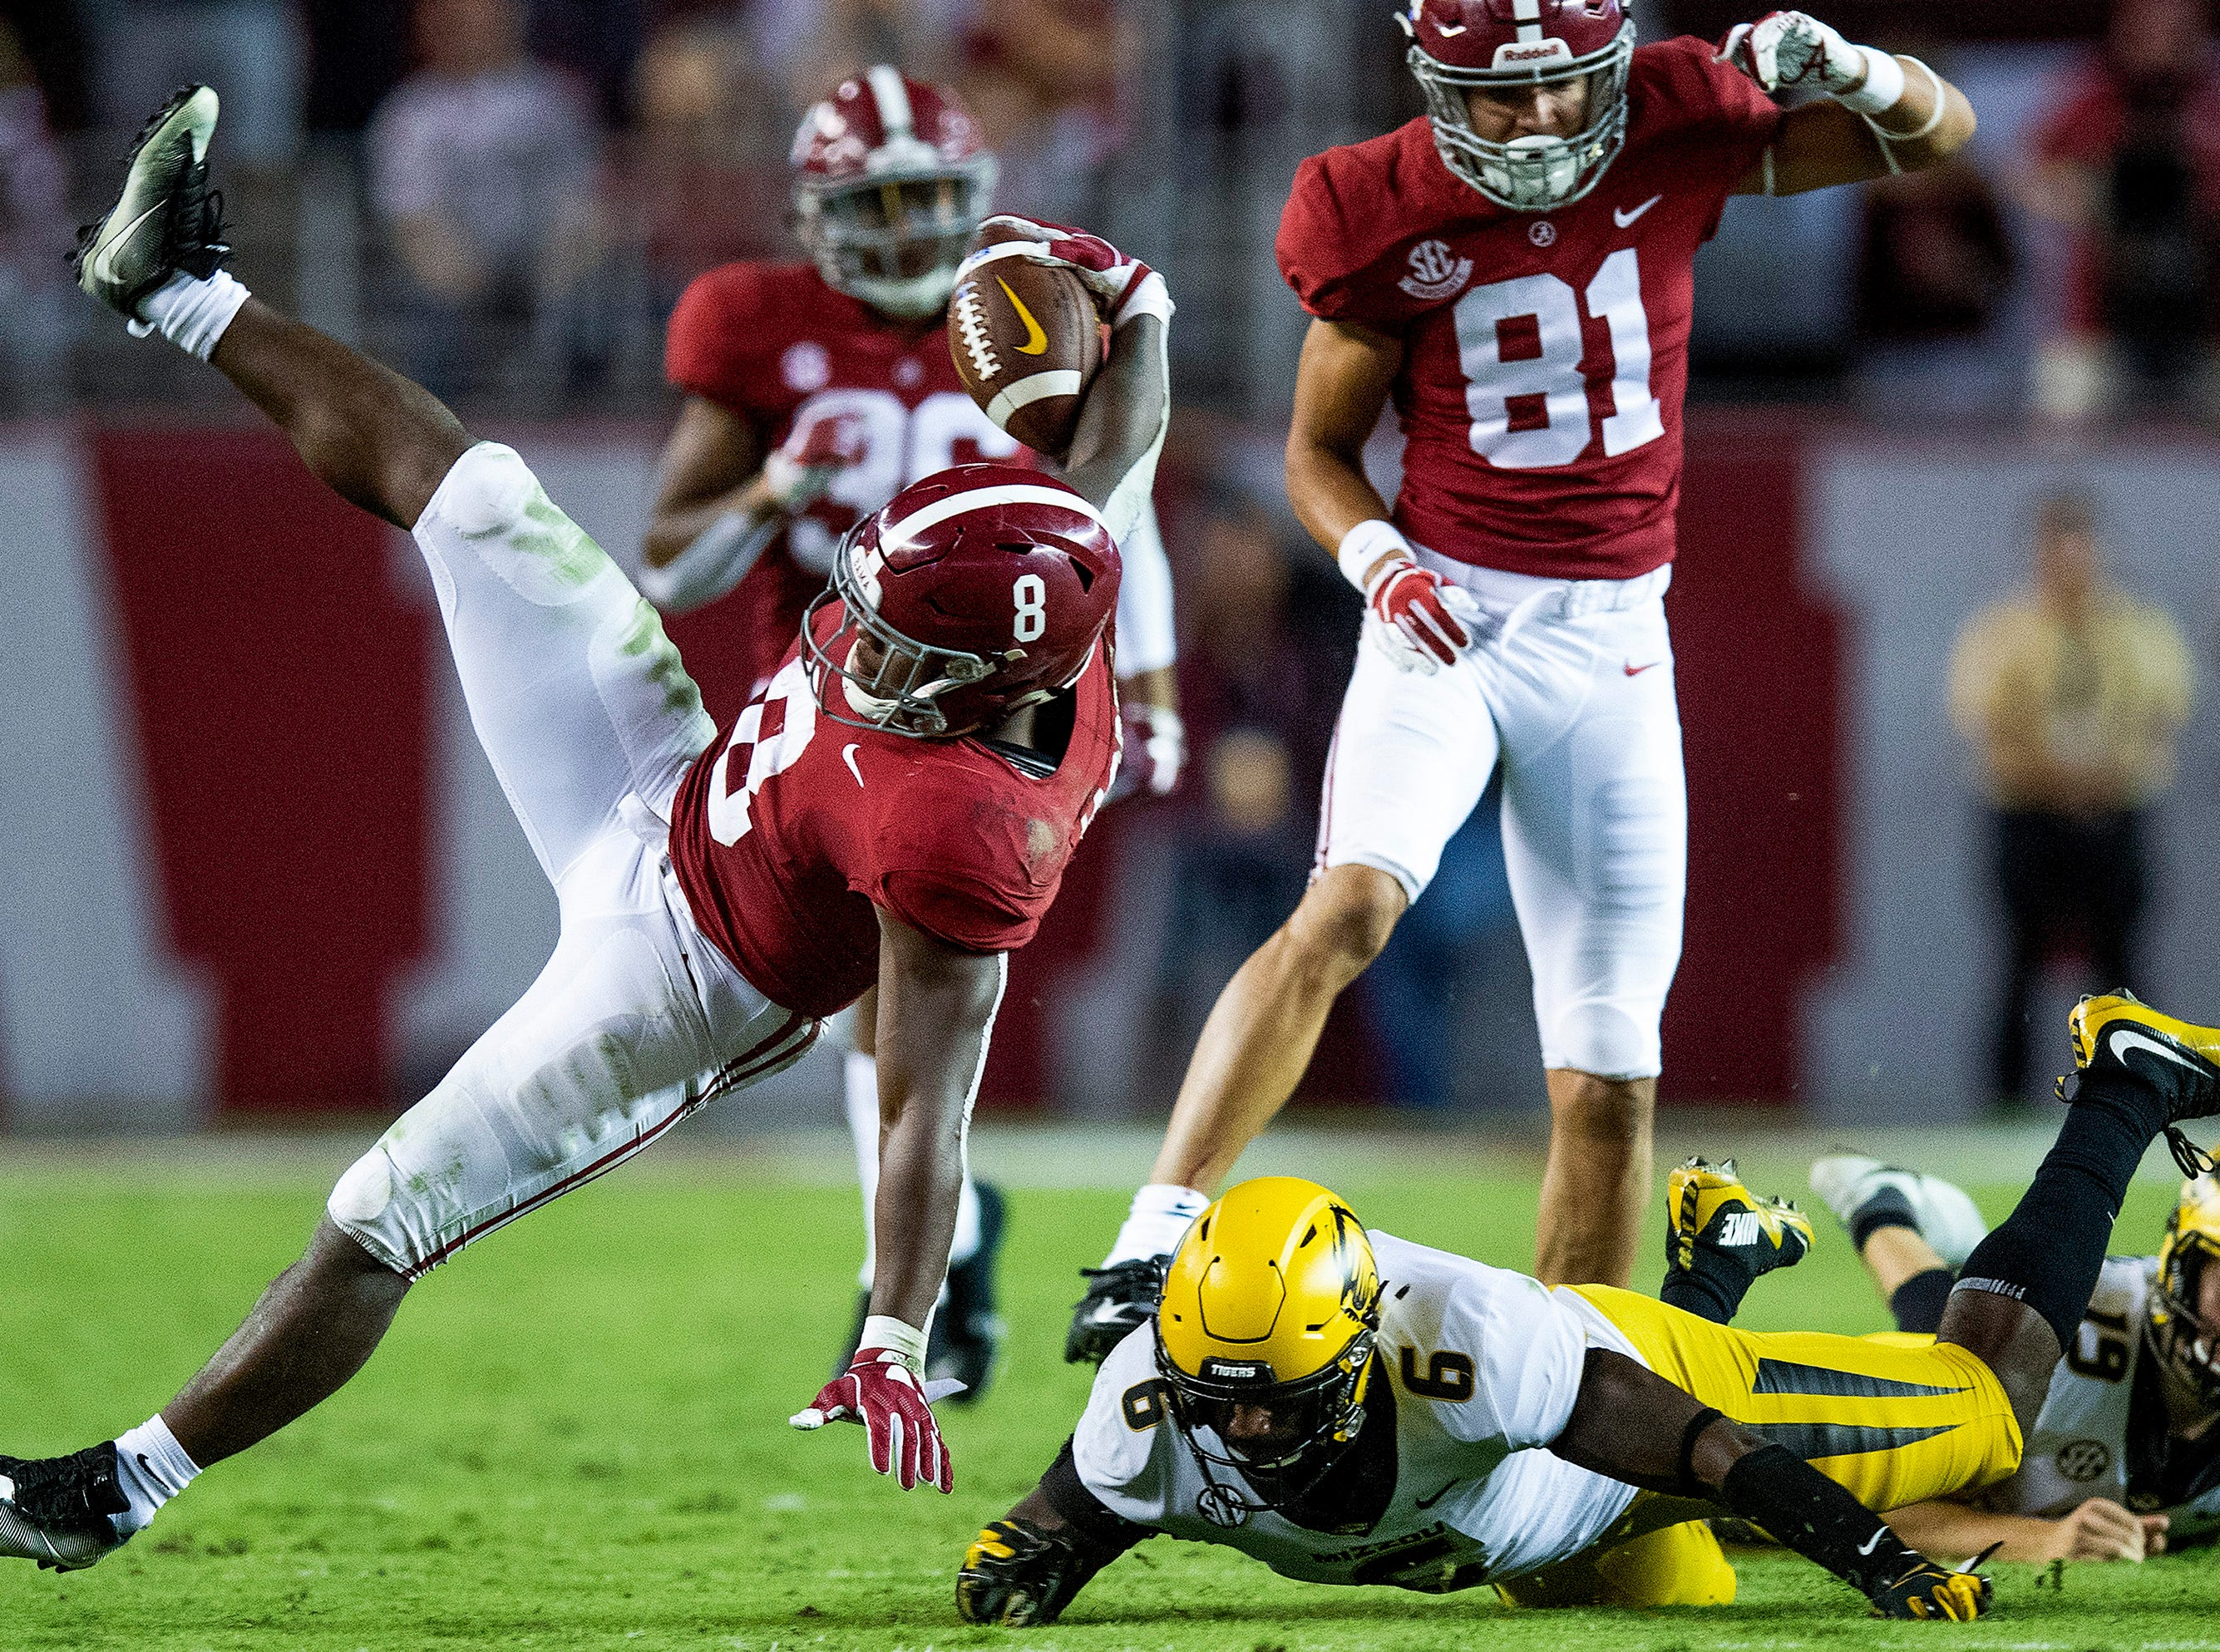 Alabama running back Josh Jacobs (8) is upended by Missouri linebacker Tavon Ross (6) in second half action at Bryant Denny Stadium in Tuscaloosa, Ala., on Saturday October 13, 2018.